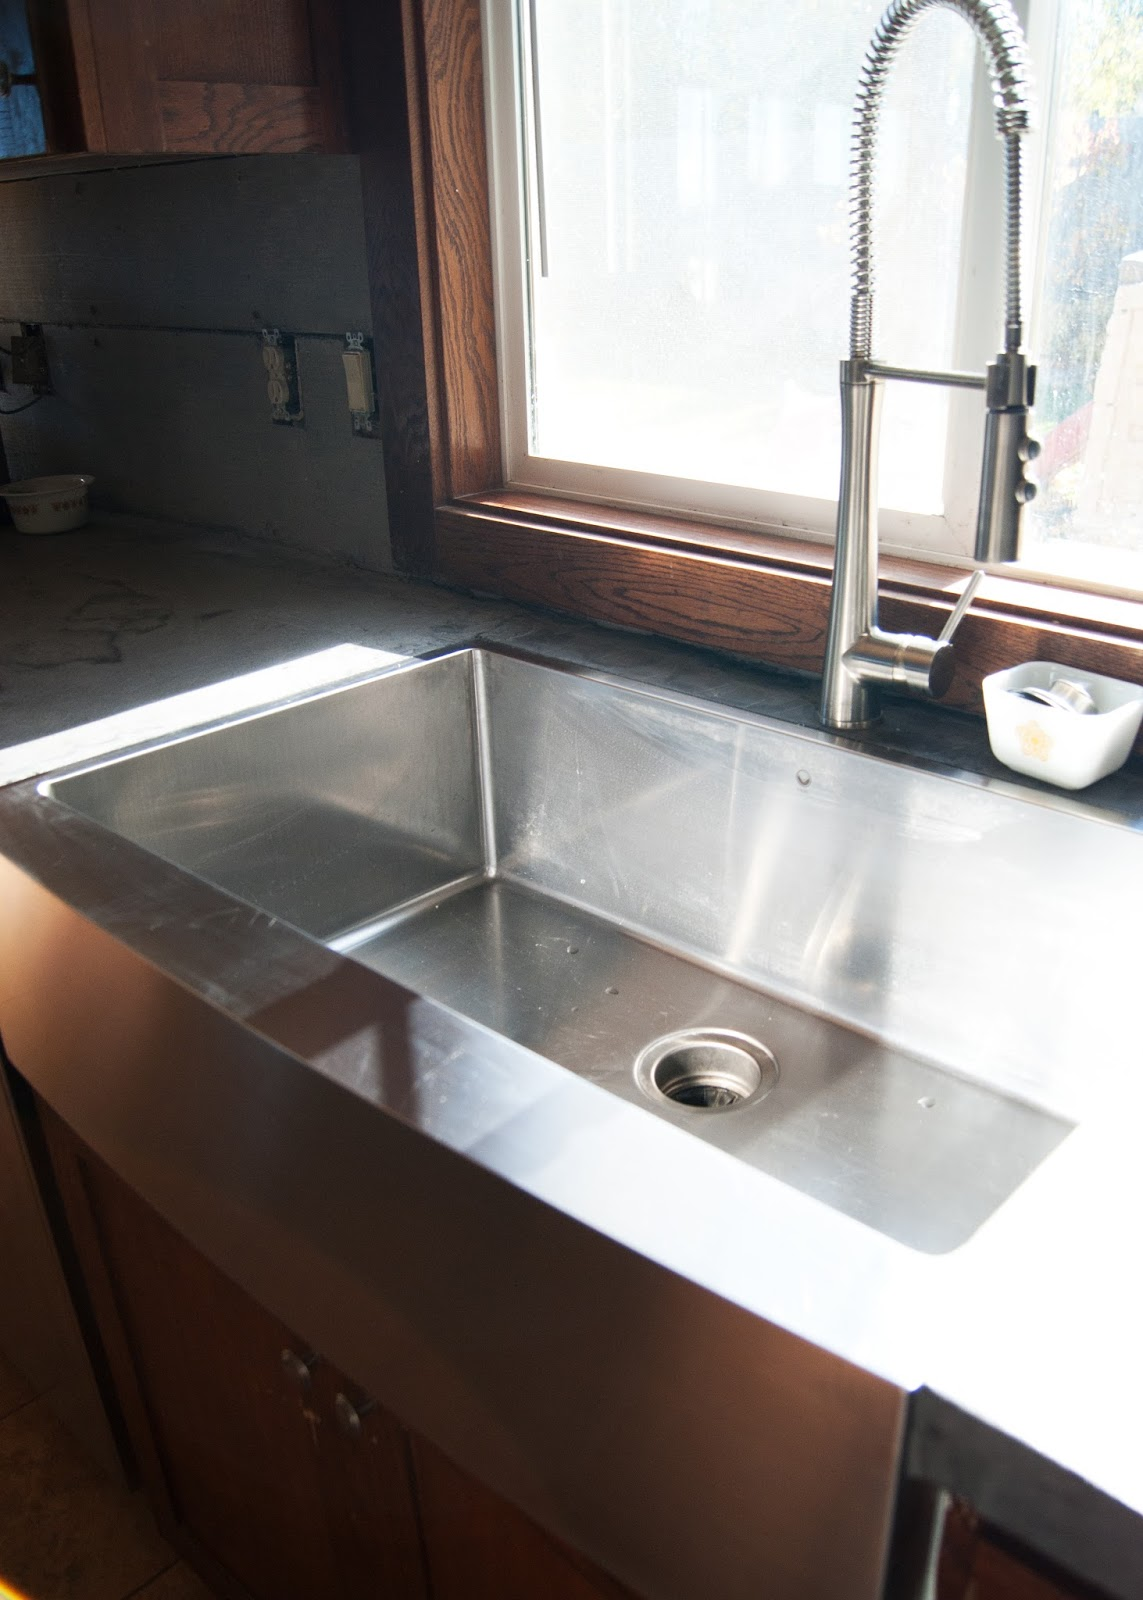 sink sinks for to page a choose steel karran solid stainless blog countertops gallery countertop solidsurface with surface undermount how